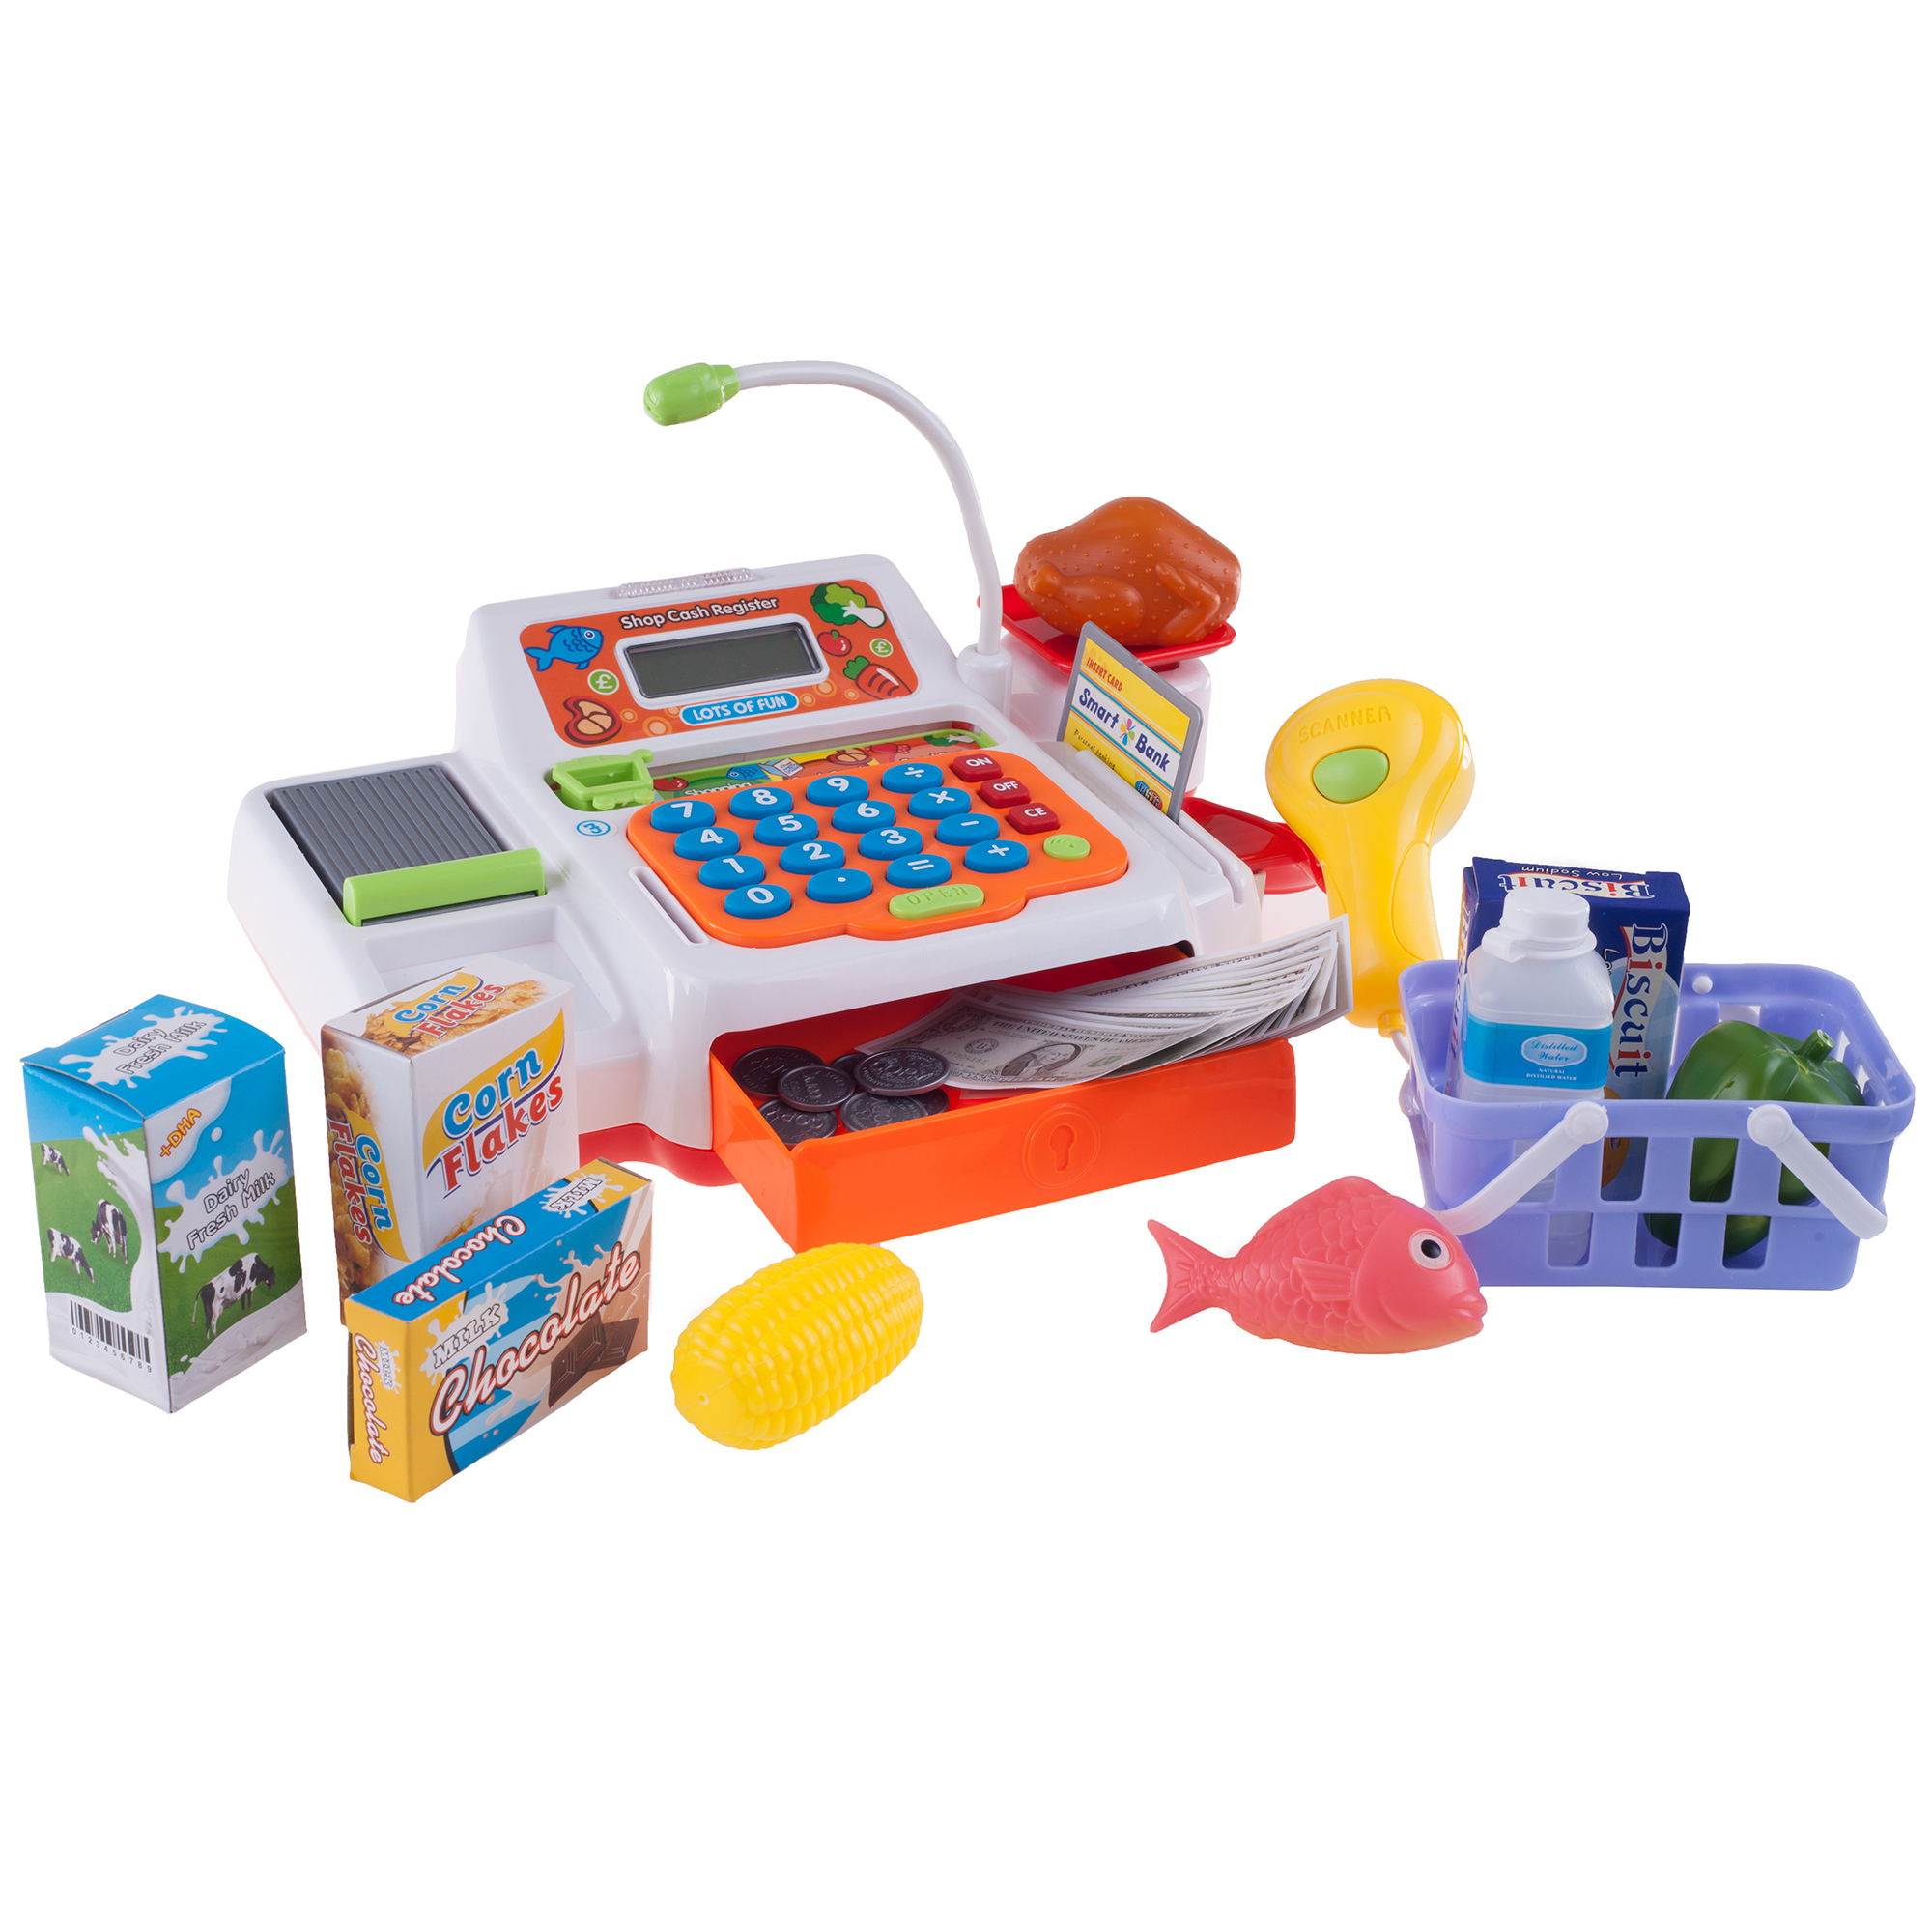 Pretend Electronic Cash Register w/ Real Sounds & Functions by Hey! Play!